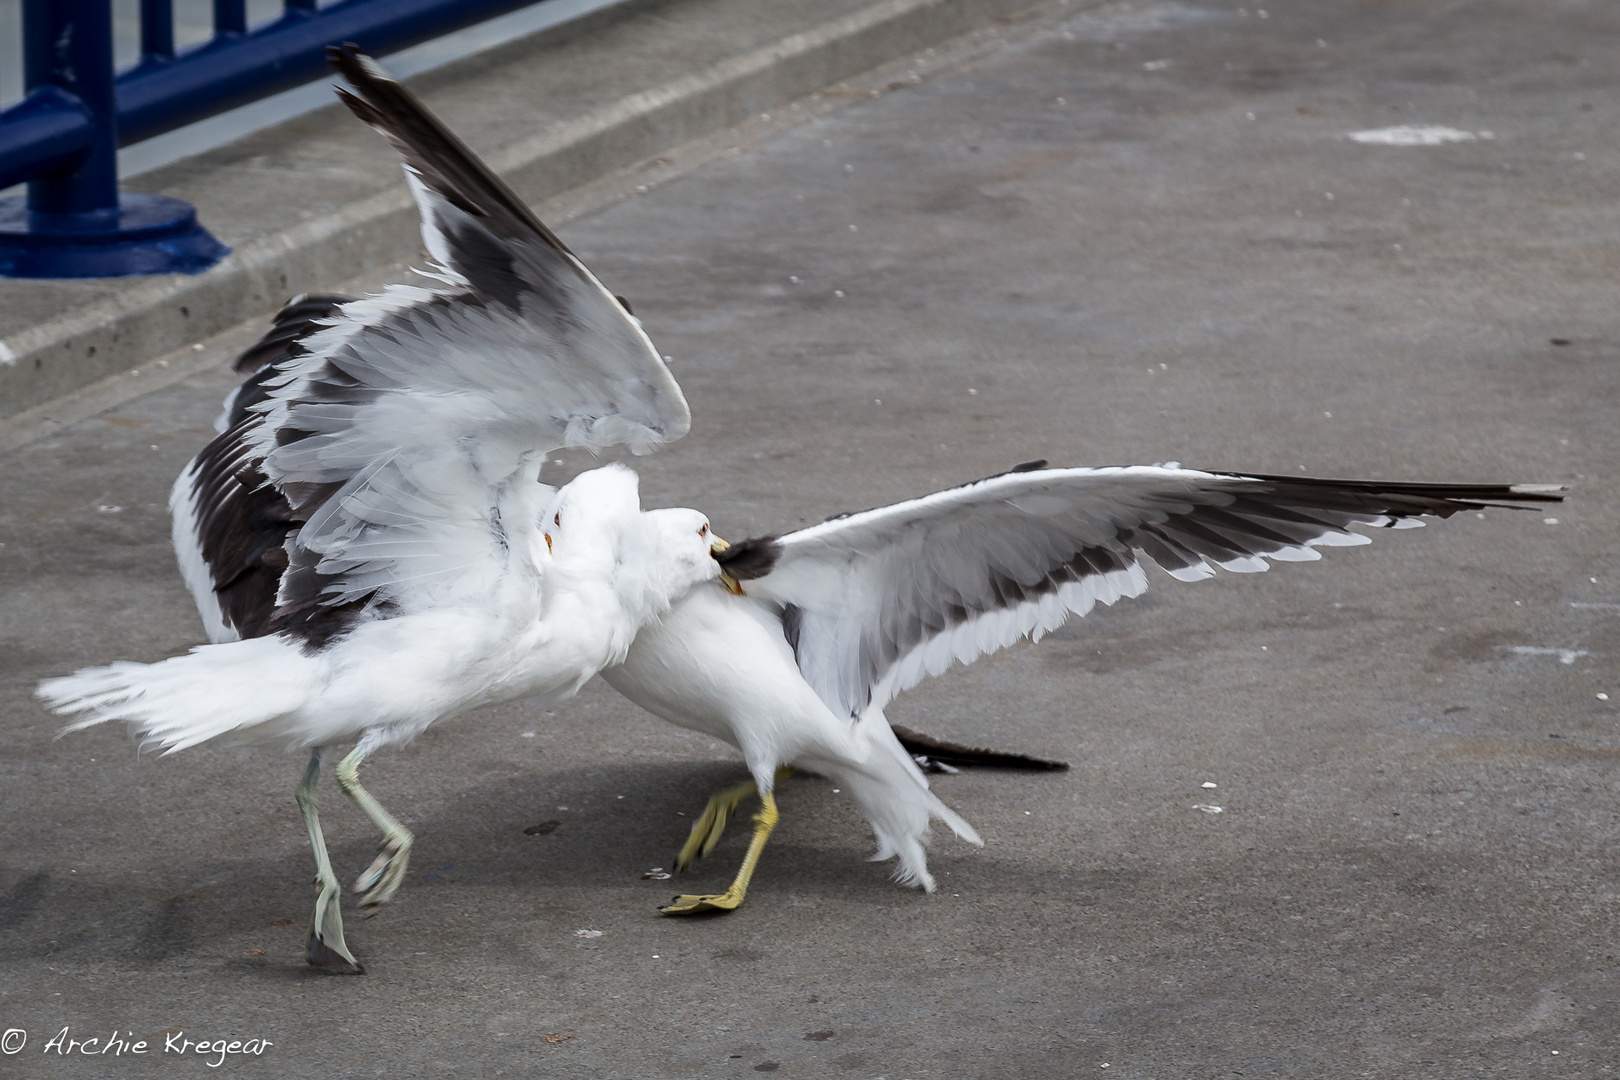 The fight of the Gulls